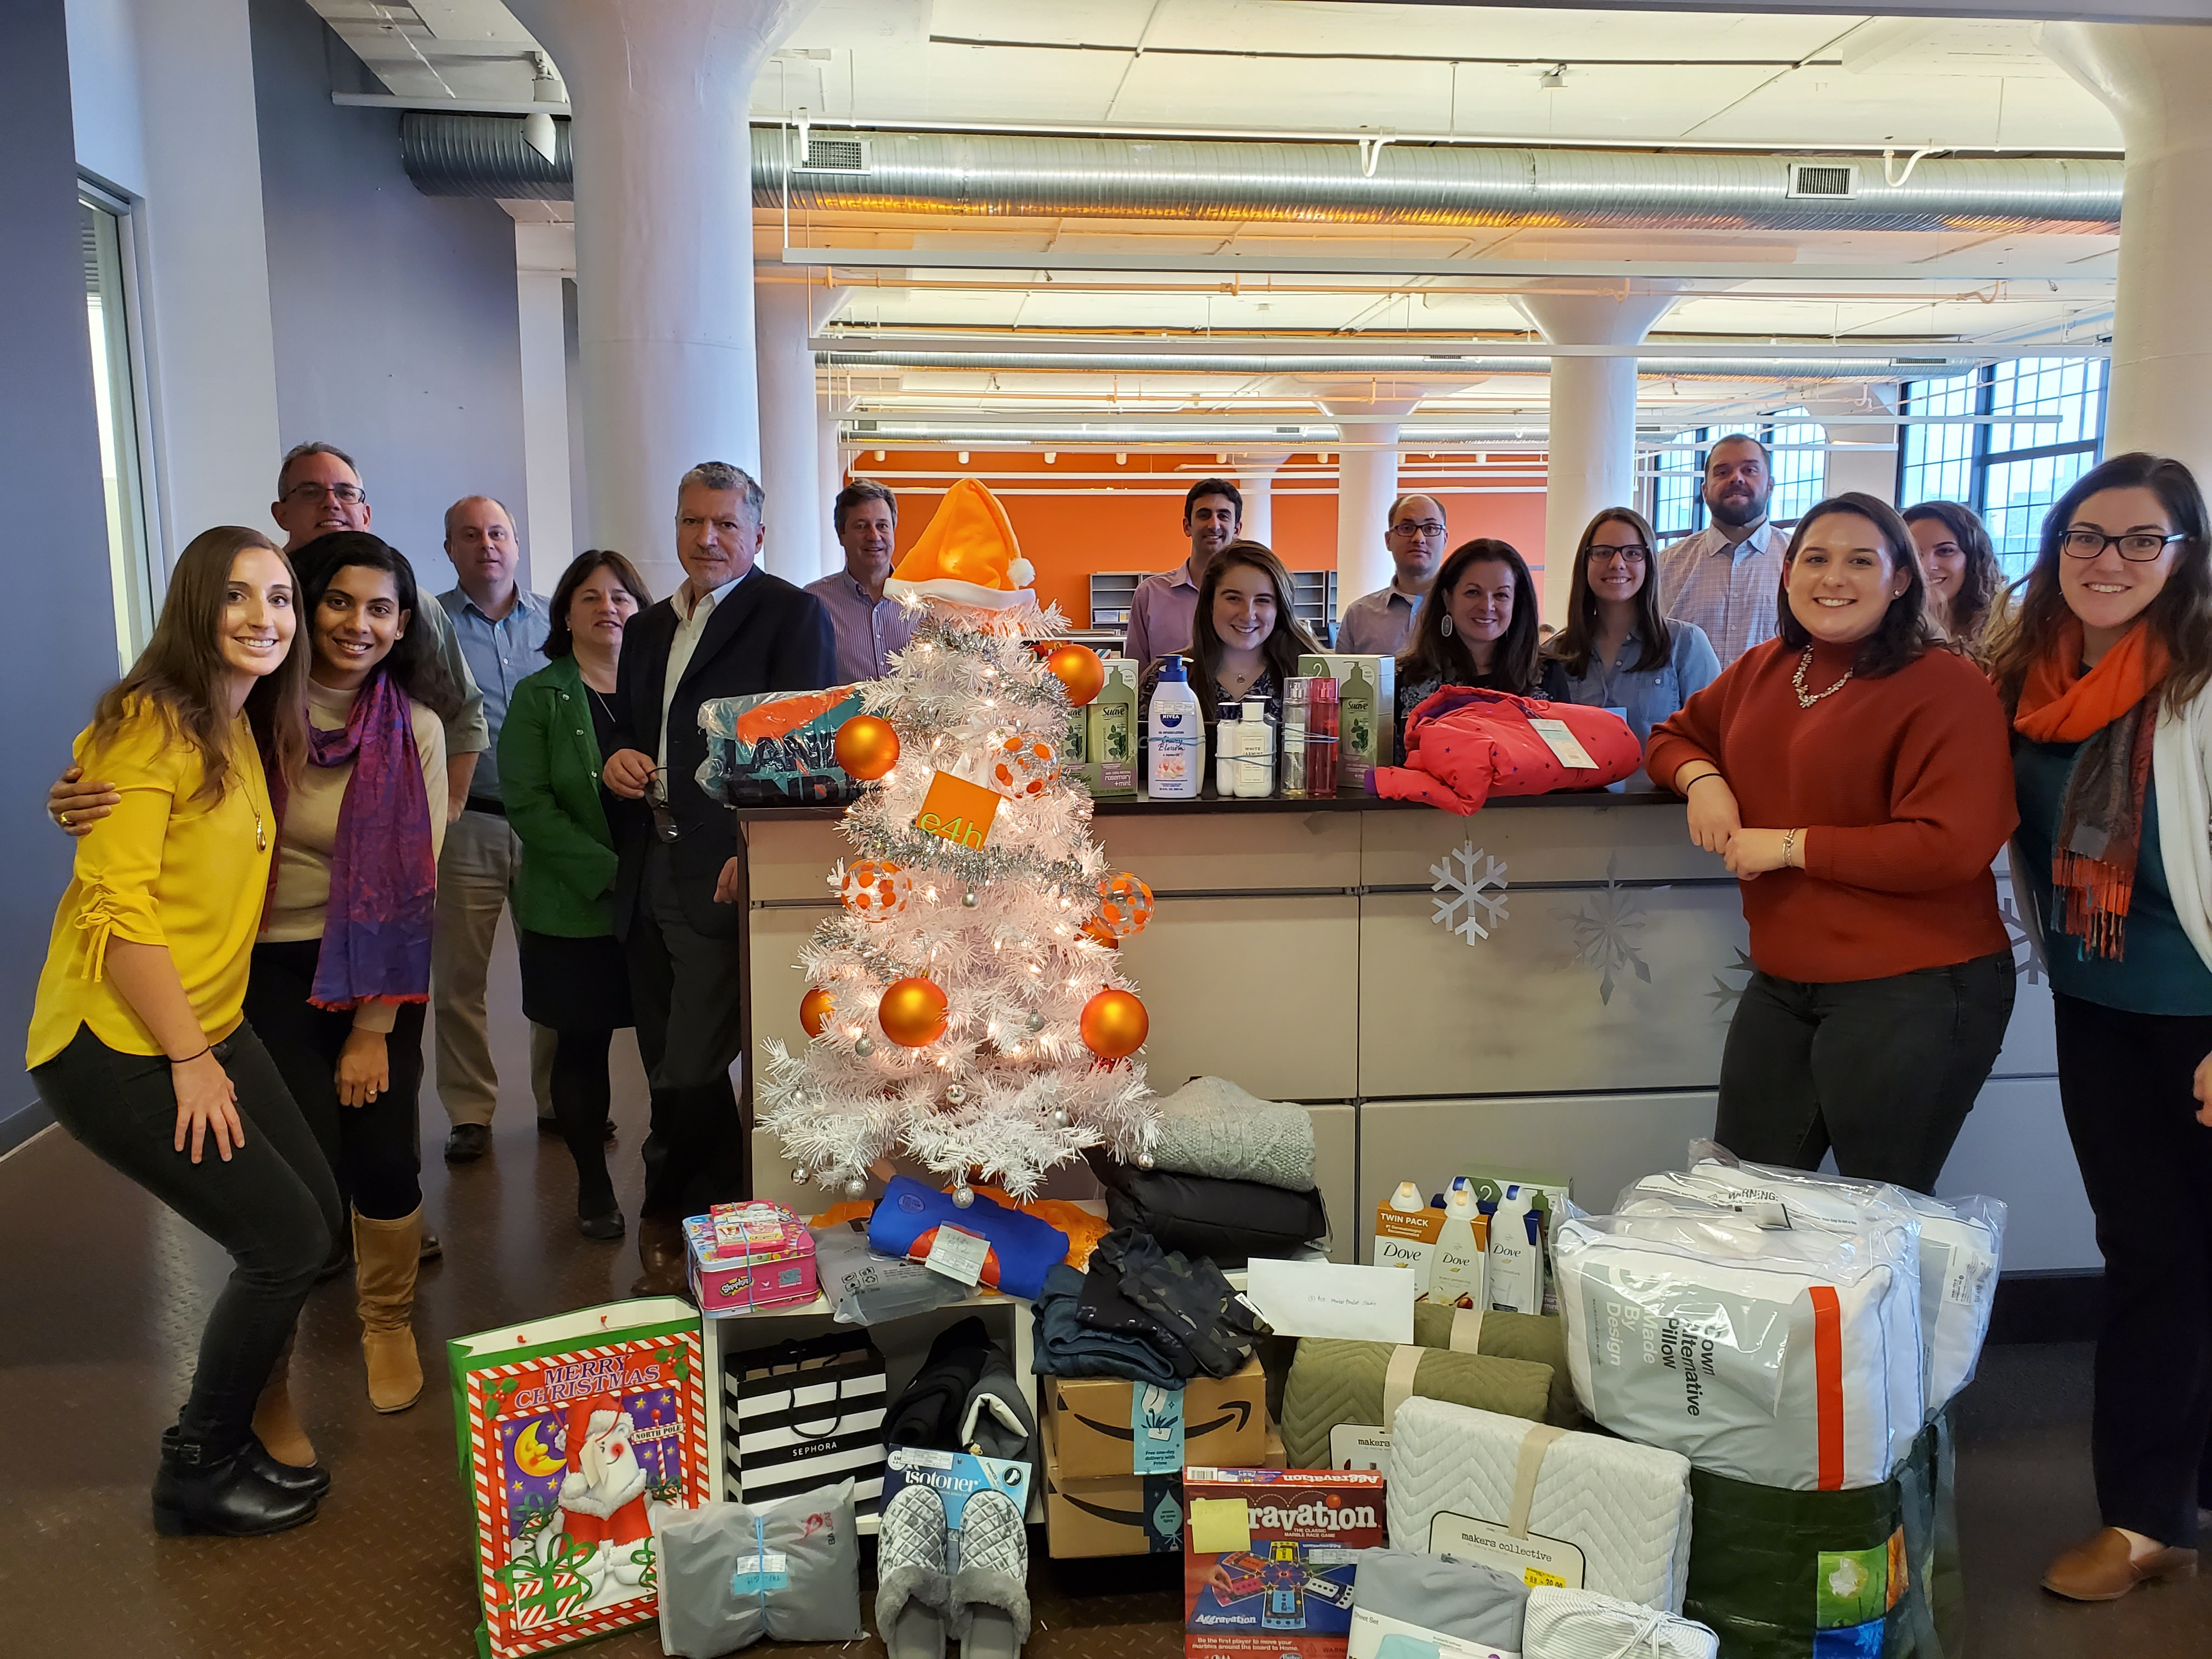 E4H Architecture's Boston team with their decorated holiday tree and wrapped charitable donations underneath